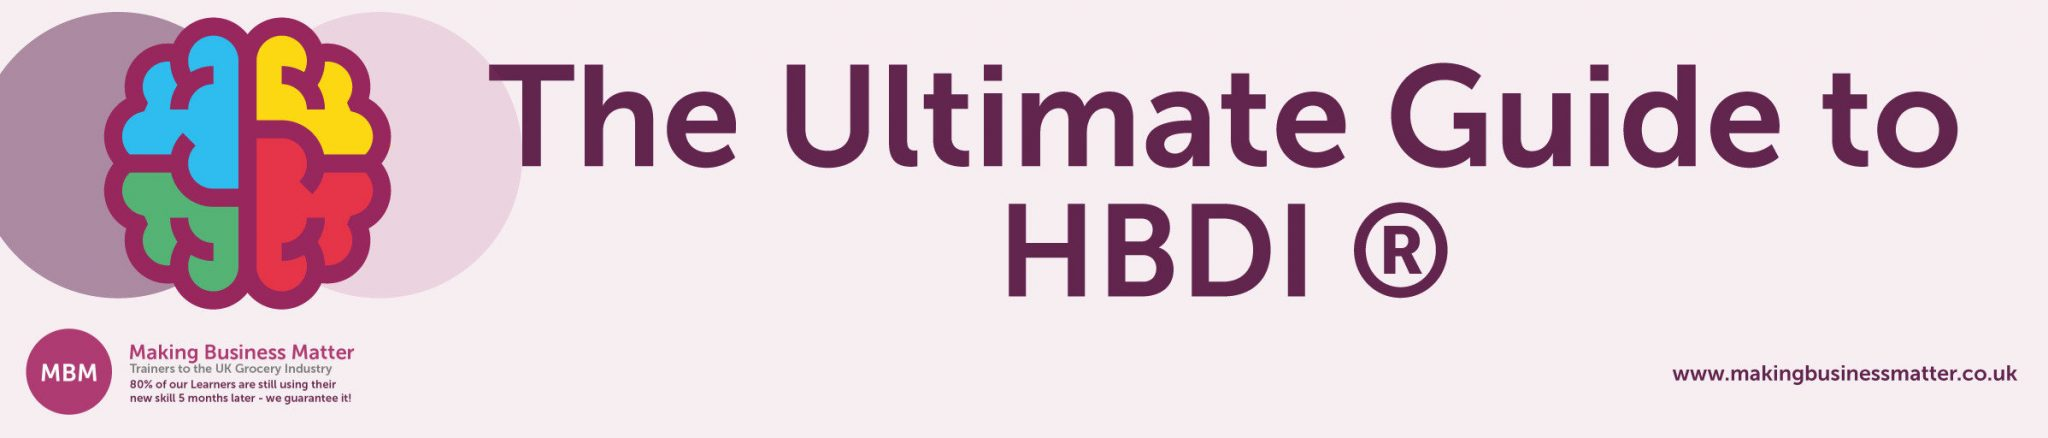 Ultimate Guide Featured Image - HBDI